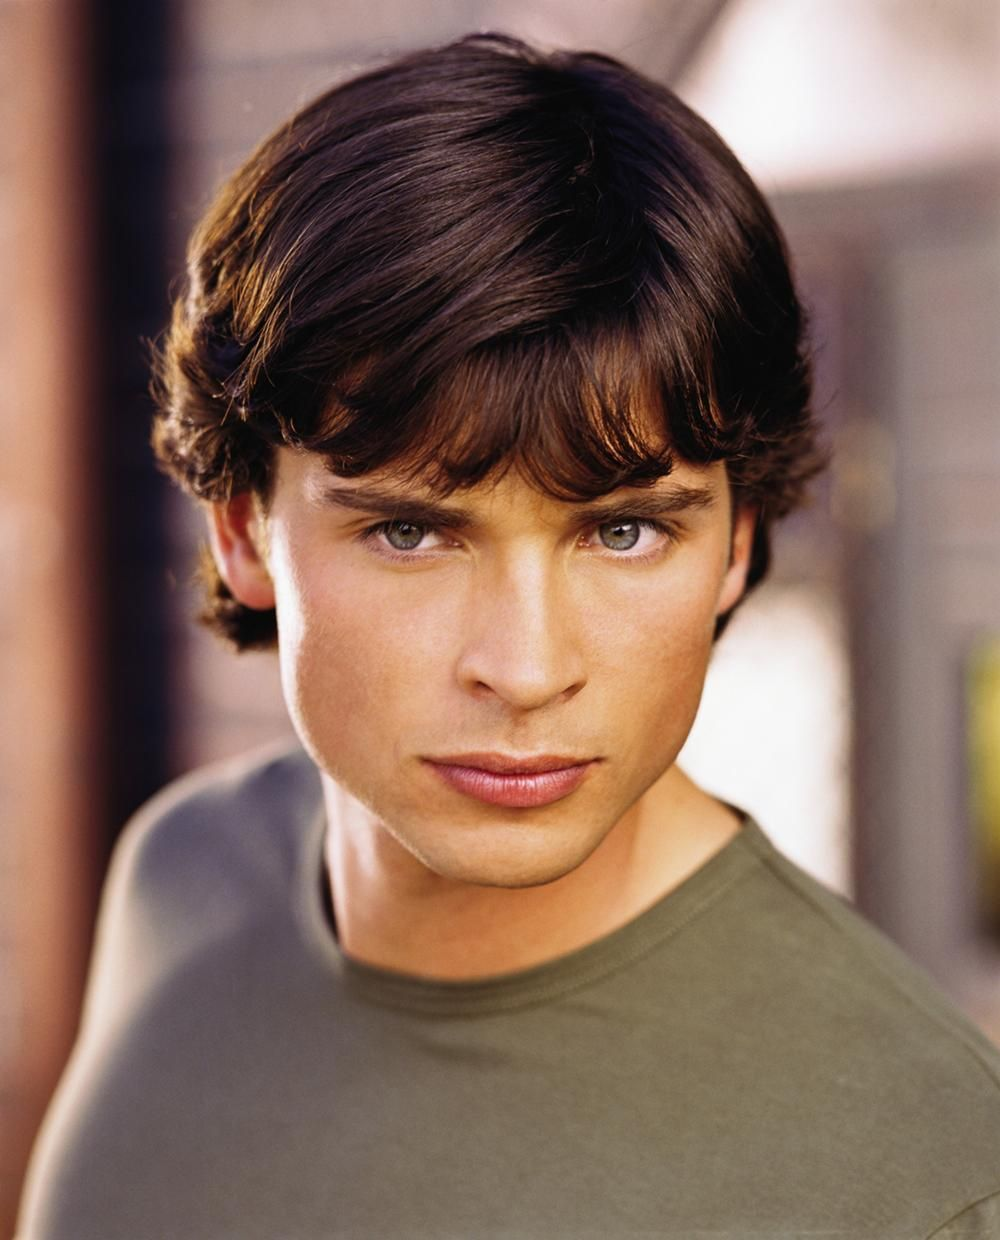 Tom Welling Smallville Wiki Tom Welling Tom Welling Smallville Toms